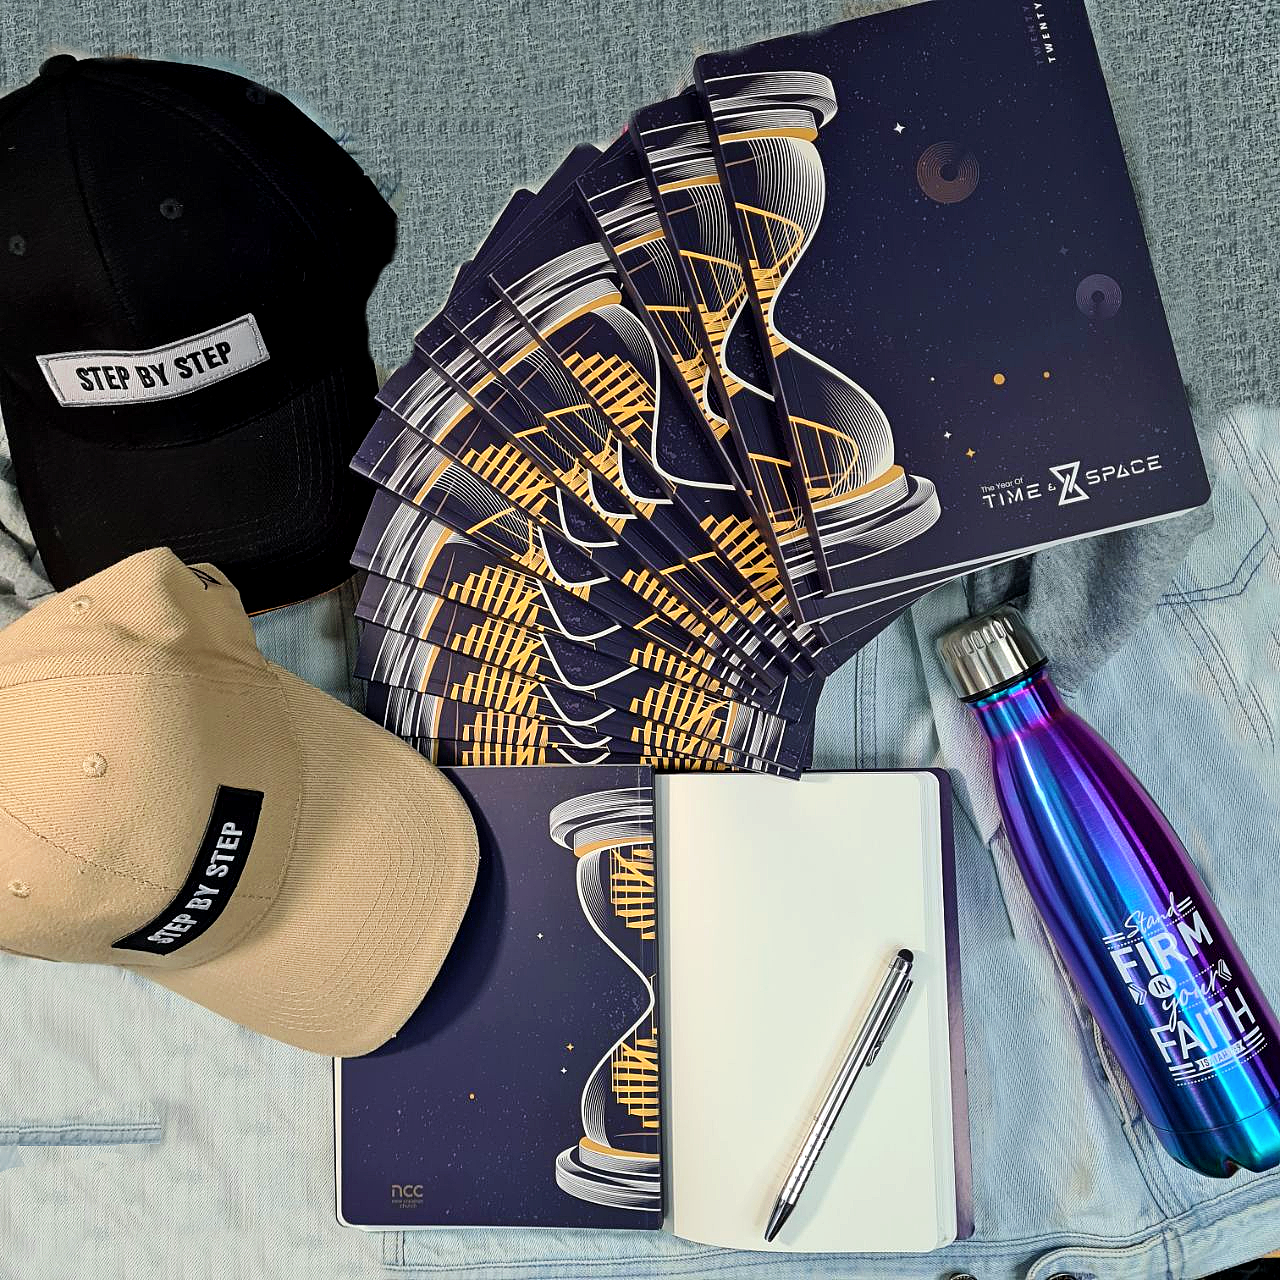 ROCKONLINE | New Creation Church | NCC | Joseph Prince | ROCK Bookshop | ROCK Bookstore | Star Vista | Time & Space A5 Notebook | Time & Space Merchandise Special Bundle | Baseball Cap | 2020 Year of Time & Space | Free delivery for SG orders above $50.